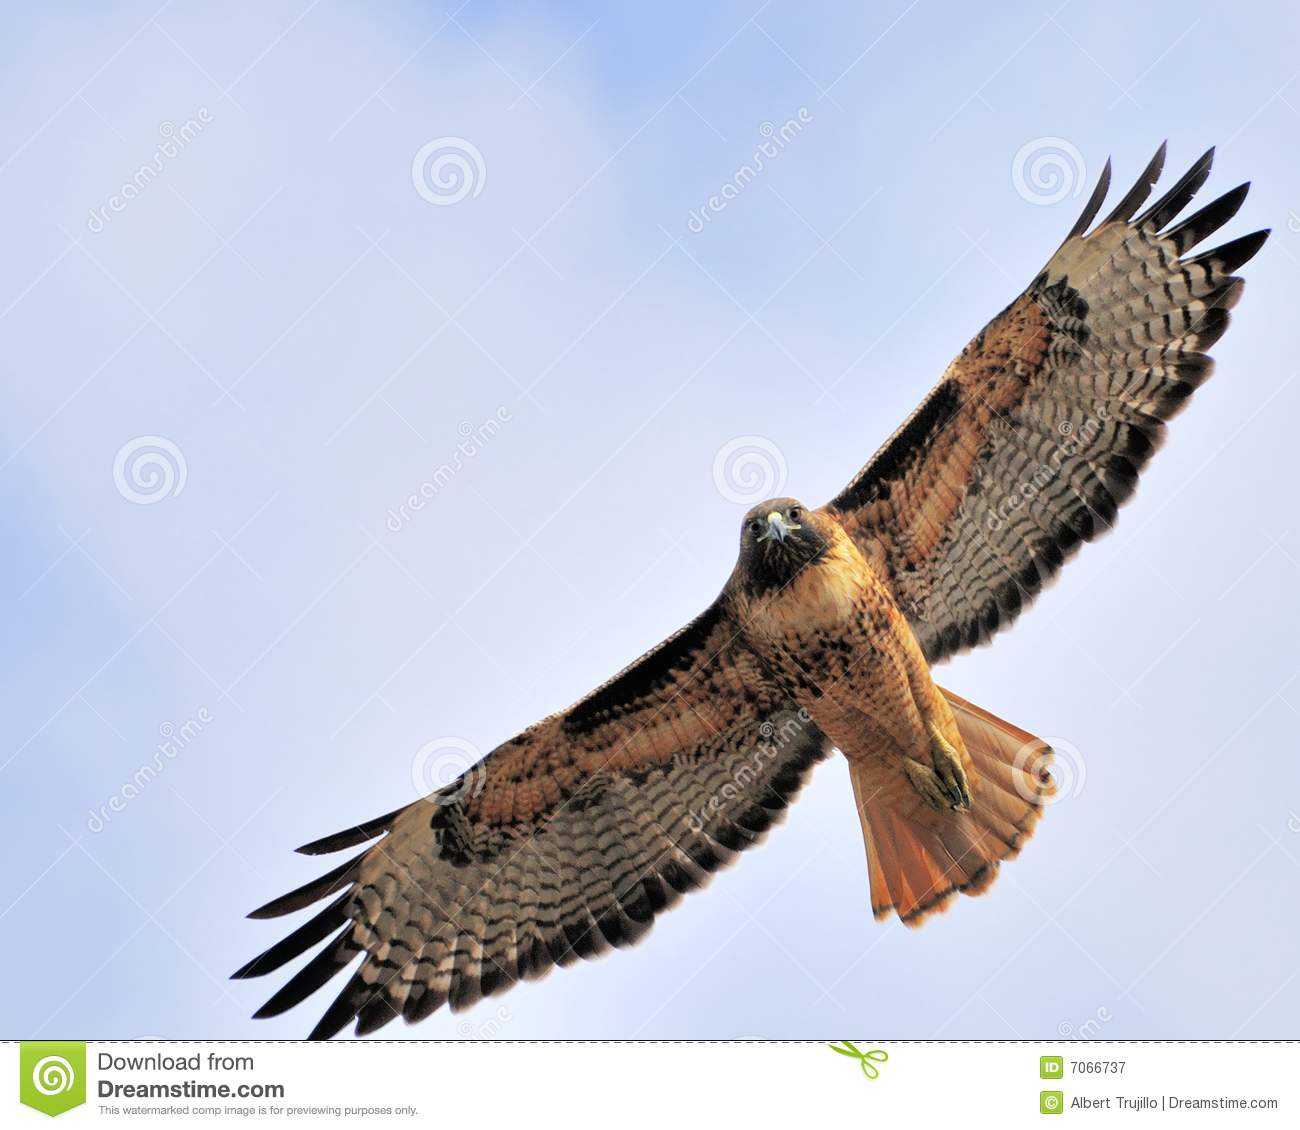 Staring Redtail Hawk Royalty Free Stock Photography - Image: 7066737